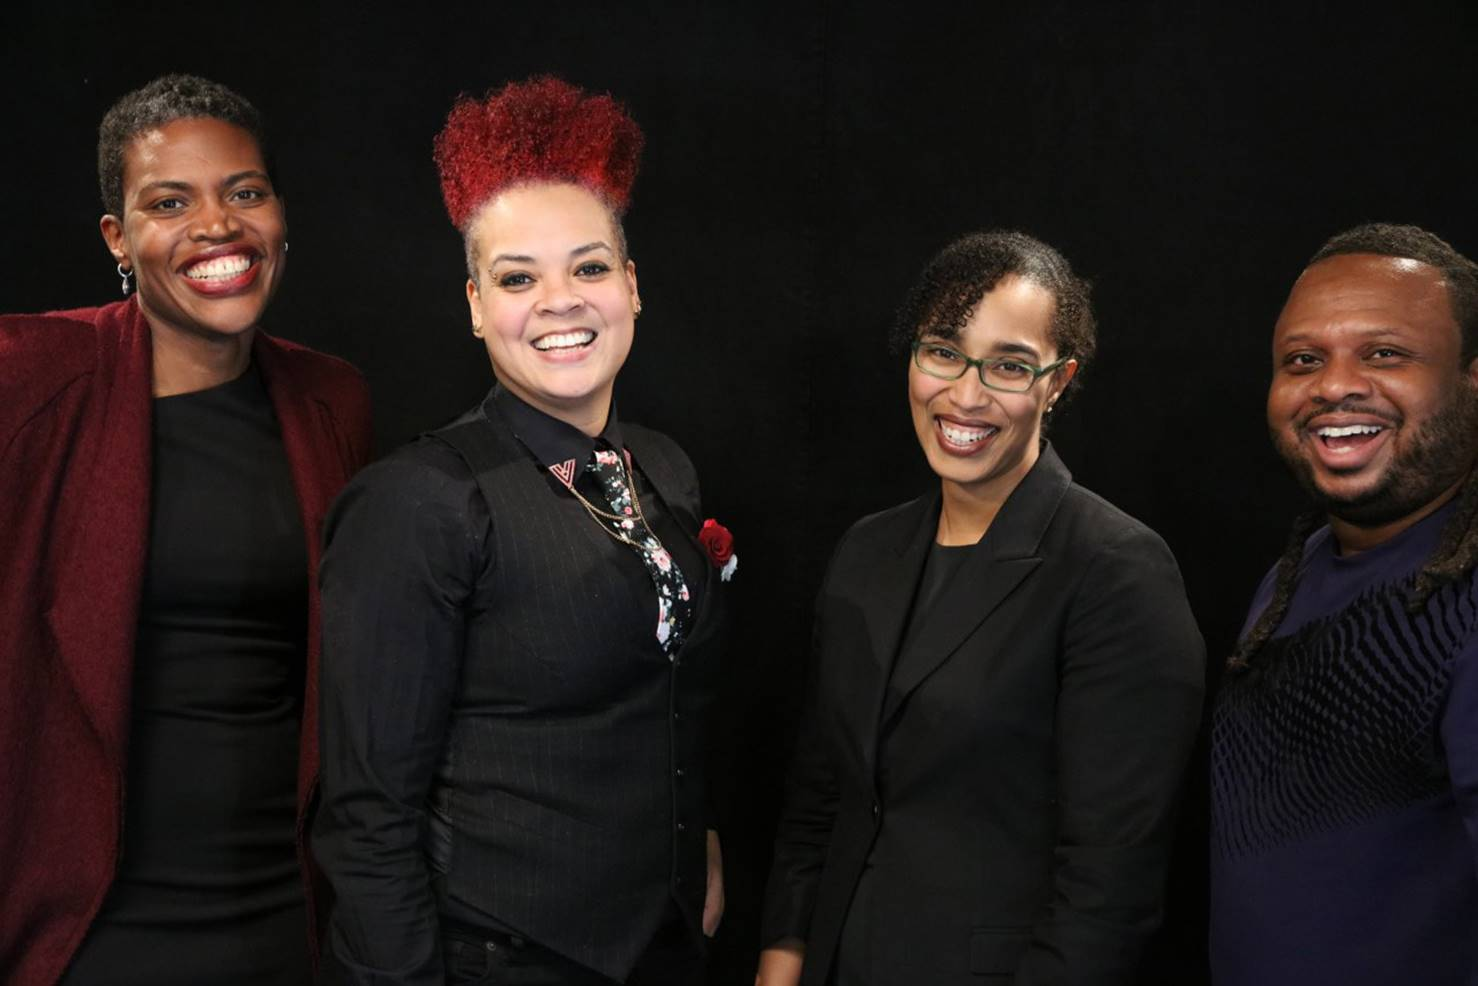 Alumni News: PhD alumna co-founder of the Institute for Healing Justice and Equity